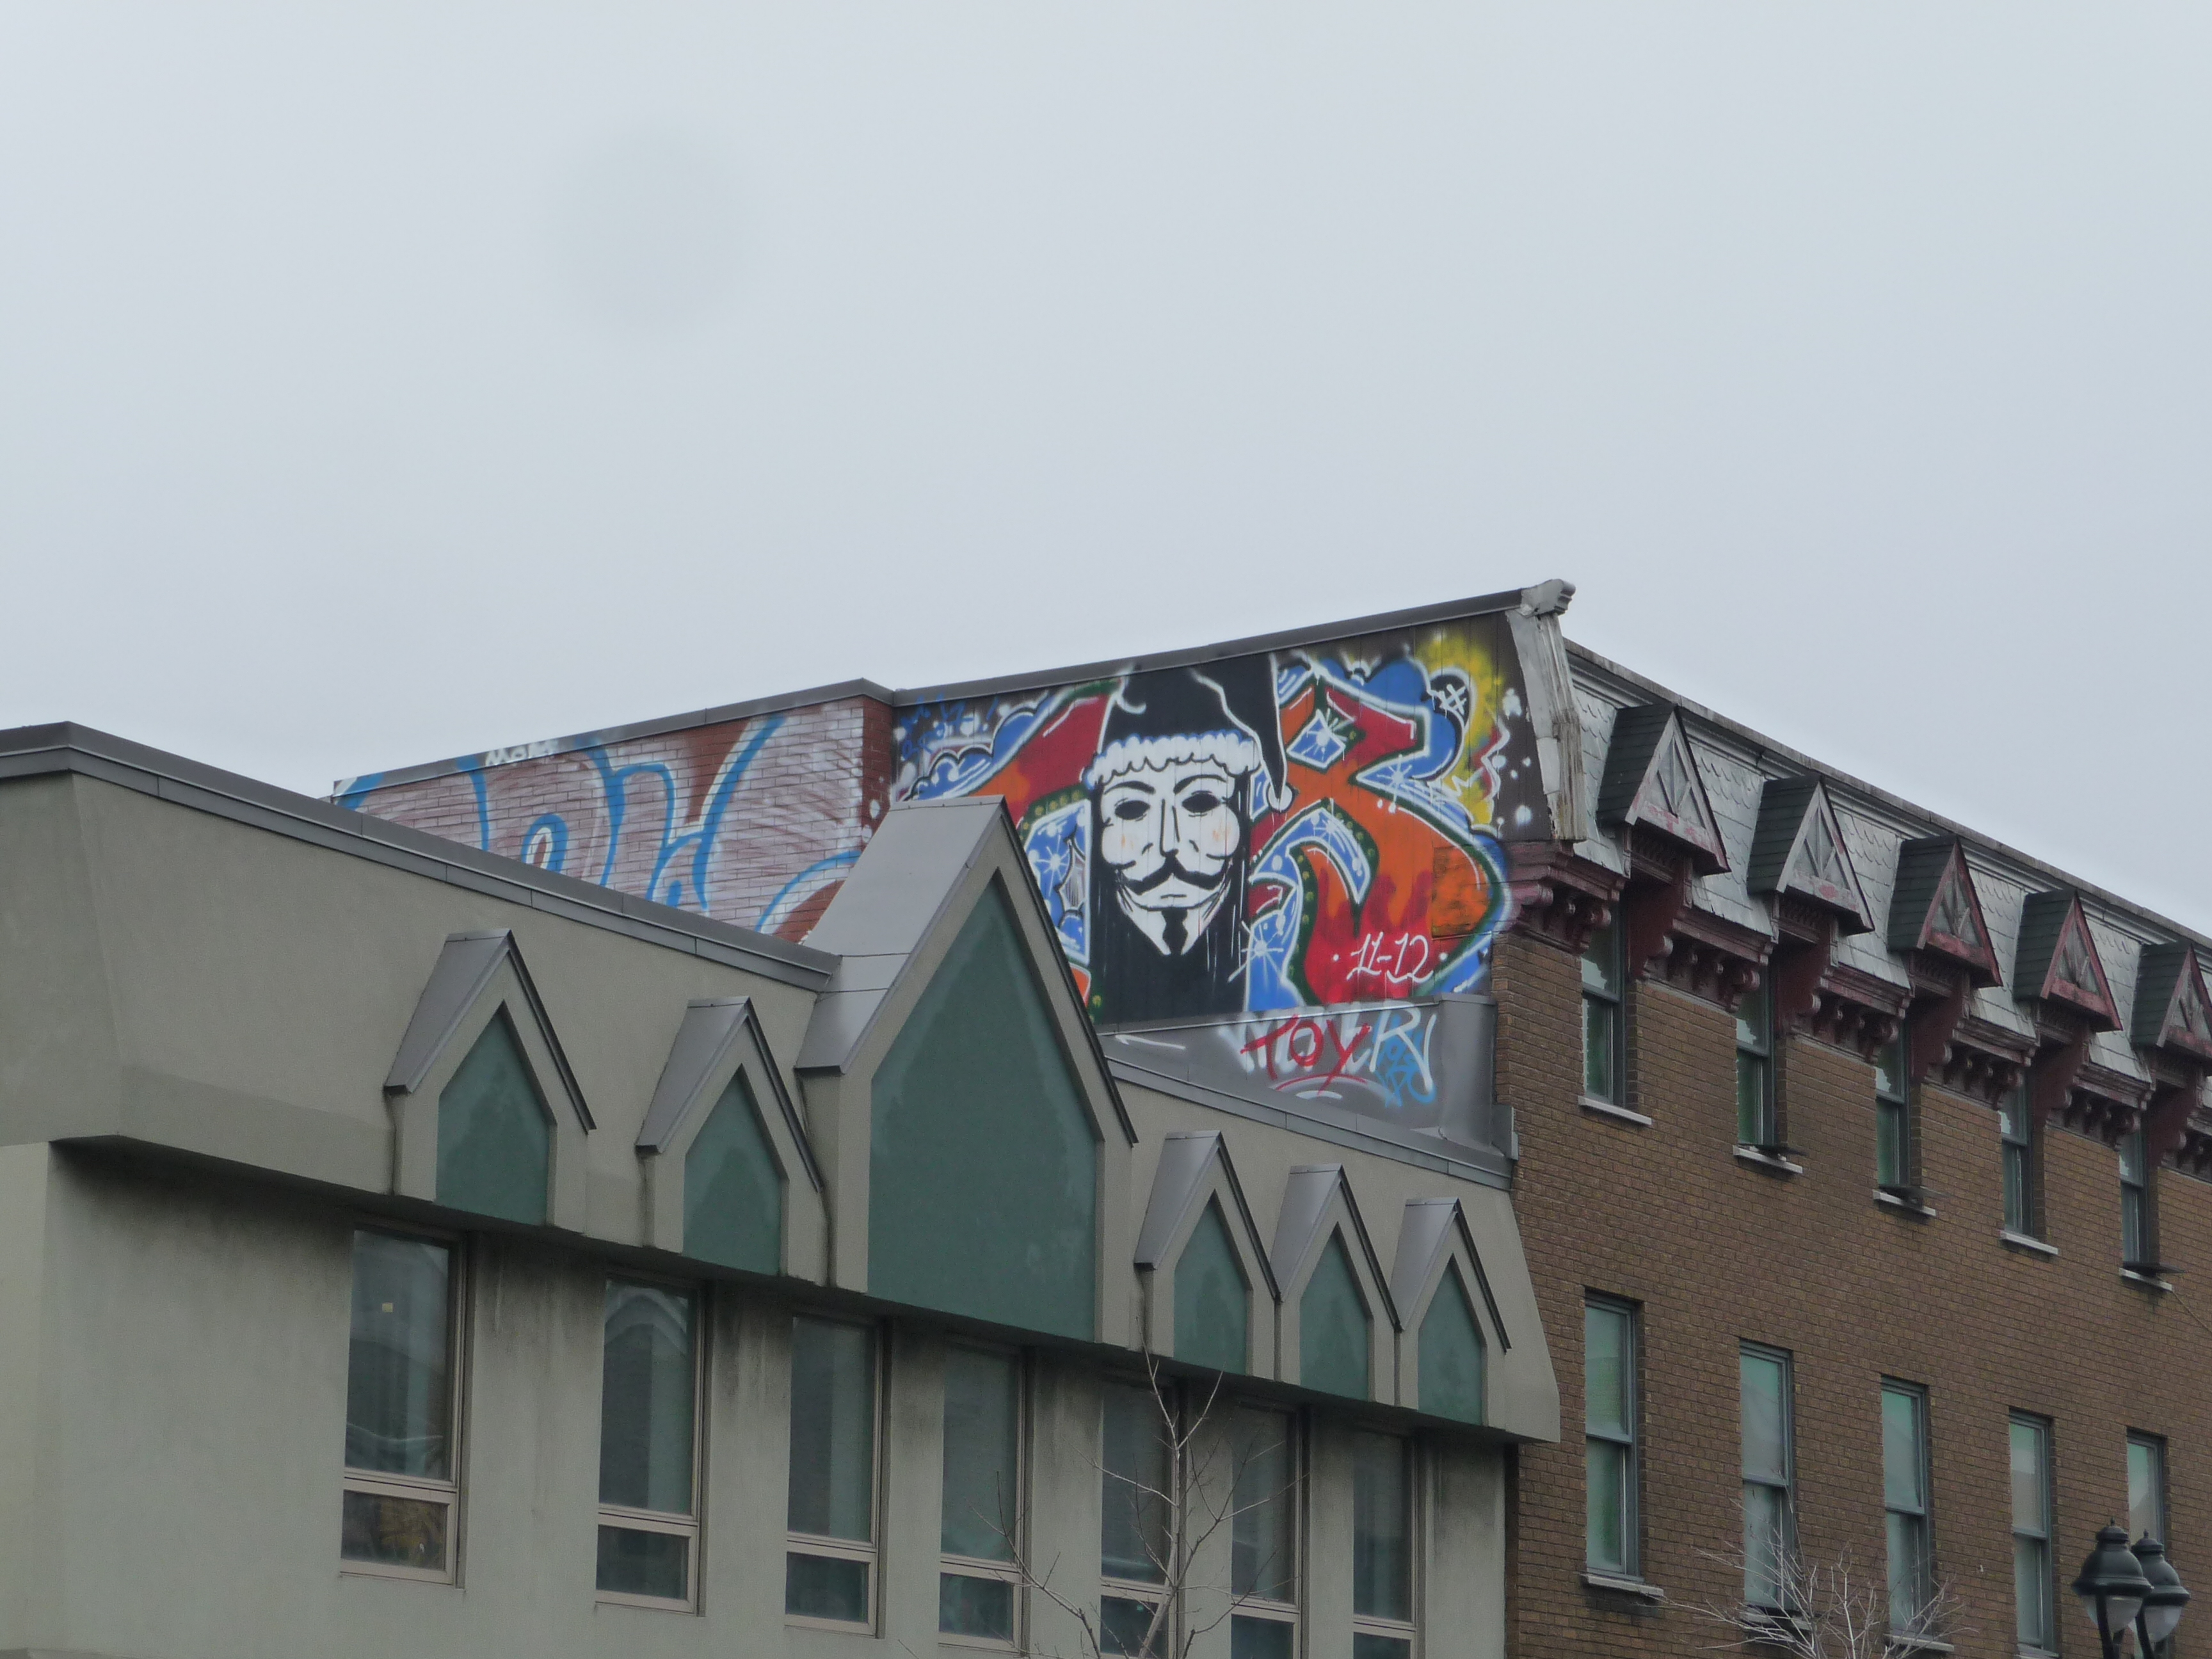 Guy_Fawkes_Mask_Graffiti_Montreal_16_March_2012